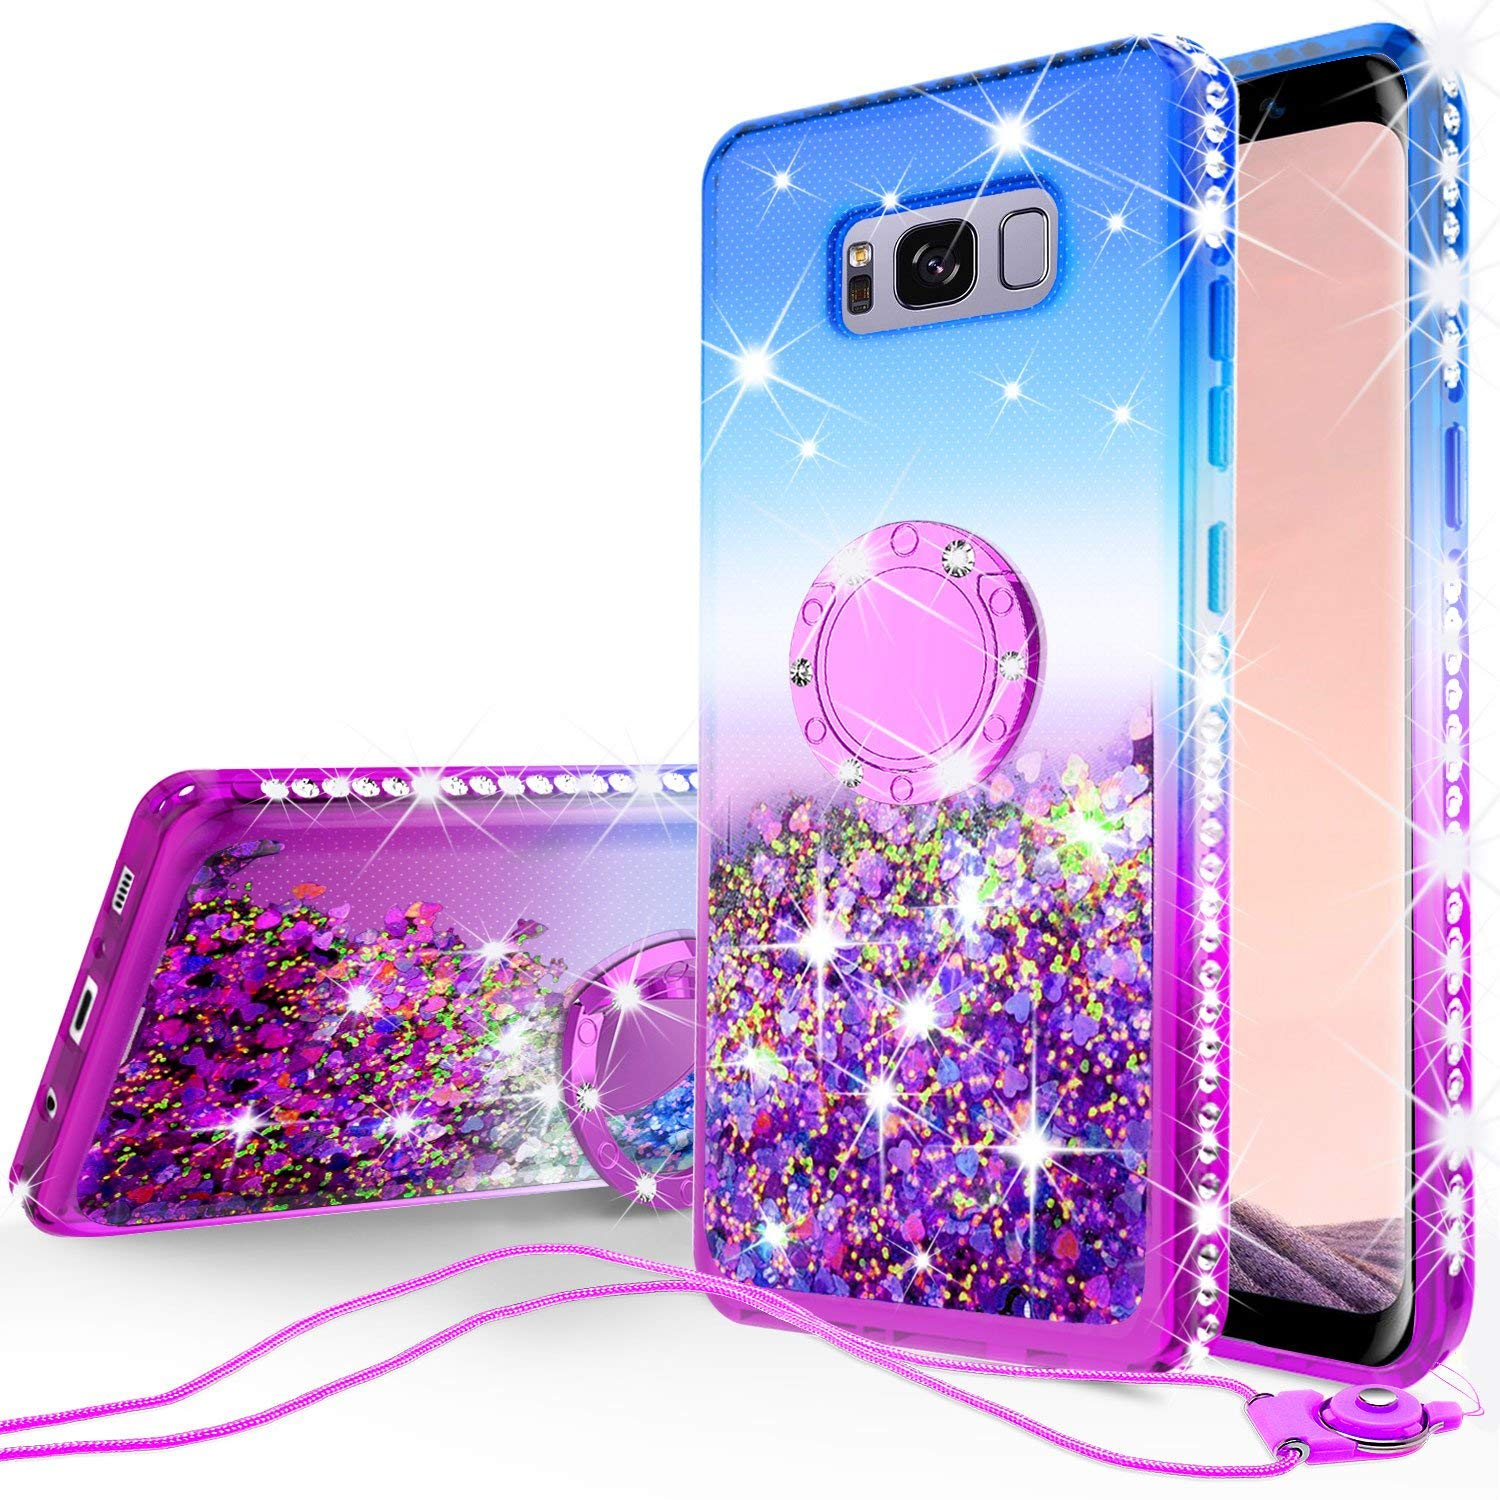 Samsung Galaxy S8 Liquid Floating Quicksand Glitter Phone Case Kickstand,Bling Diamond Bumper Ring Stand Protective Galaxy S8 Case for Girl Women - Purple